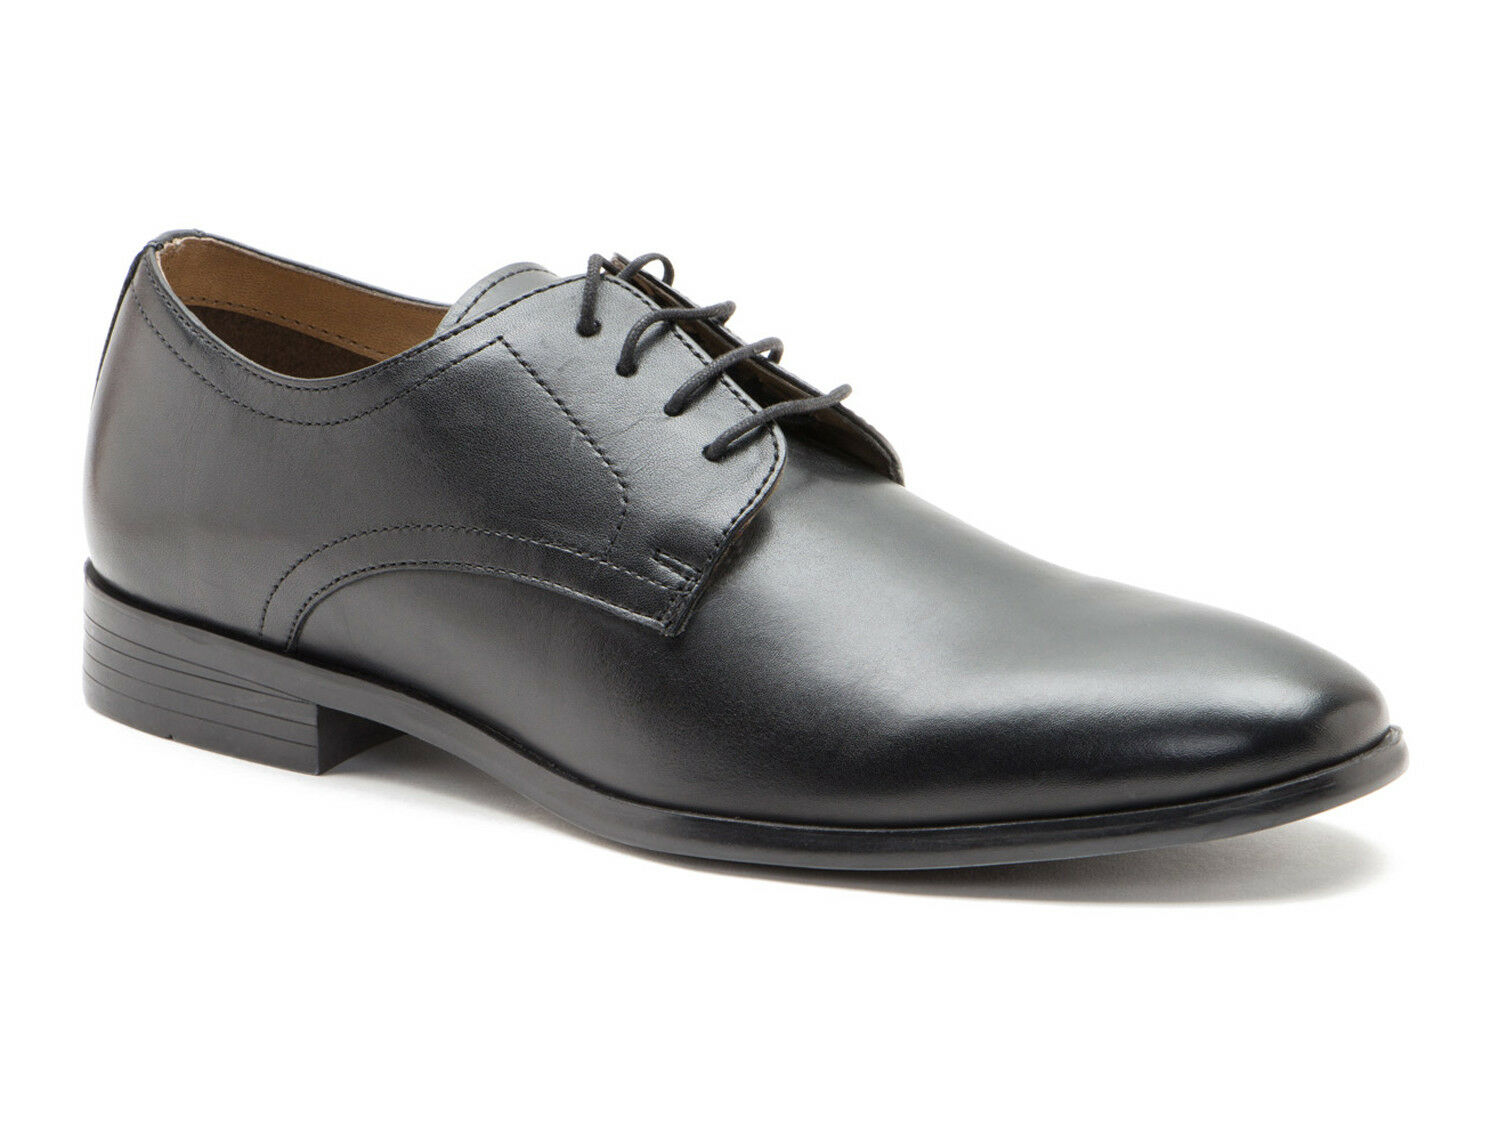 Red Tape SILWOOD Uomo nero pelle formale da Uomo SILWOOD Scarpe da DERBY 65d133